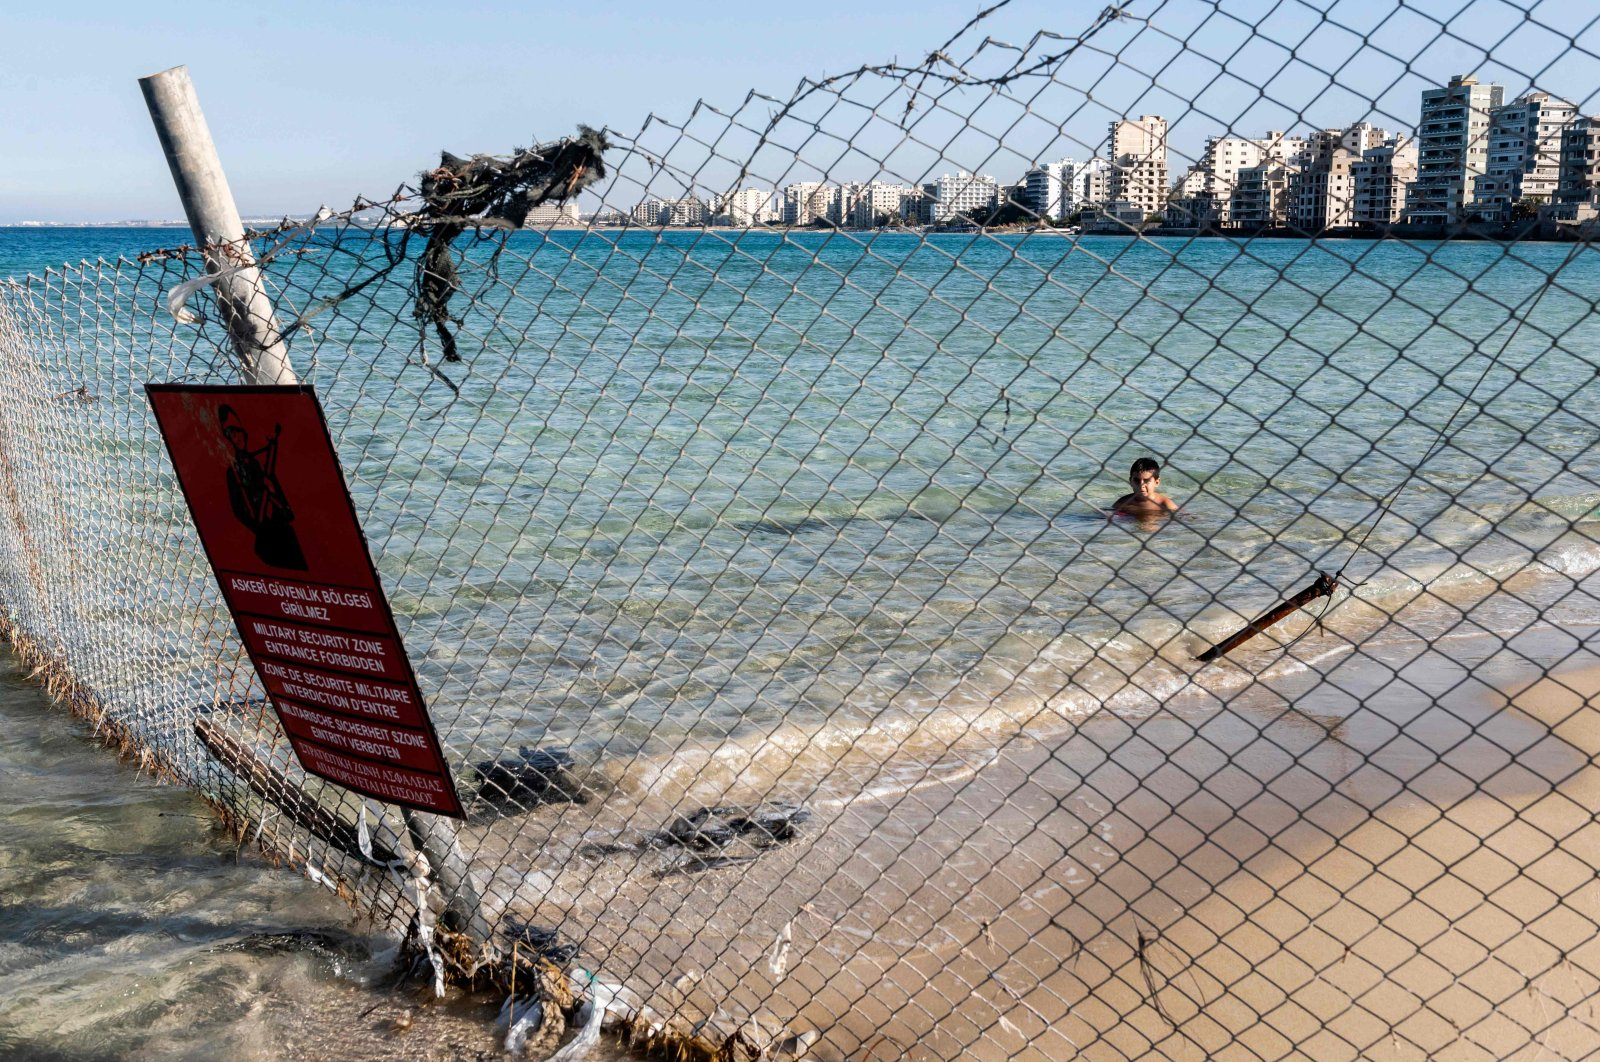 A child swims behind a Turkish army sign in the fenced-off area of Varosha (Maraş) in Famagusta town, Turkish Republic of Northern Cyprus (TRNC), June 19, 2021. (AFP Photo)